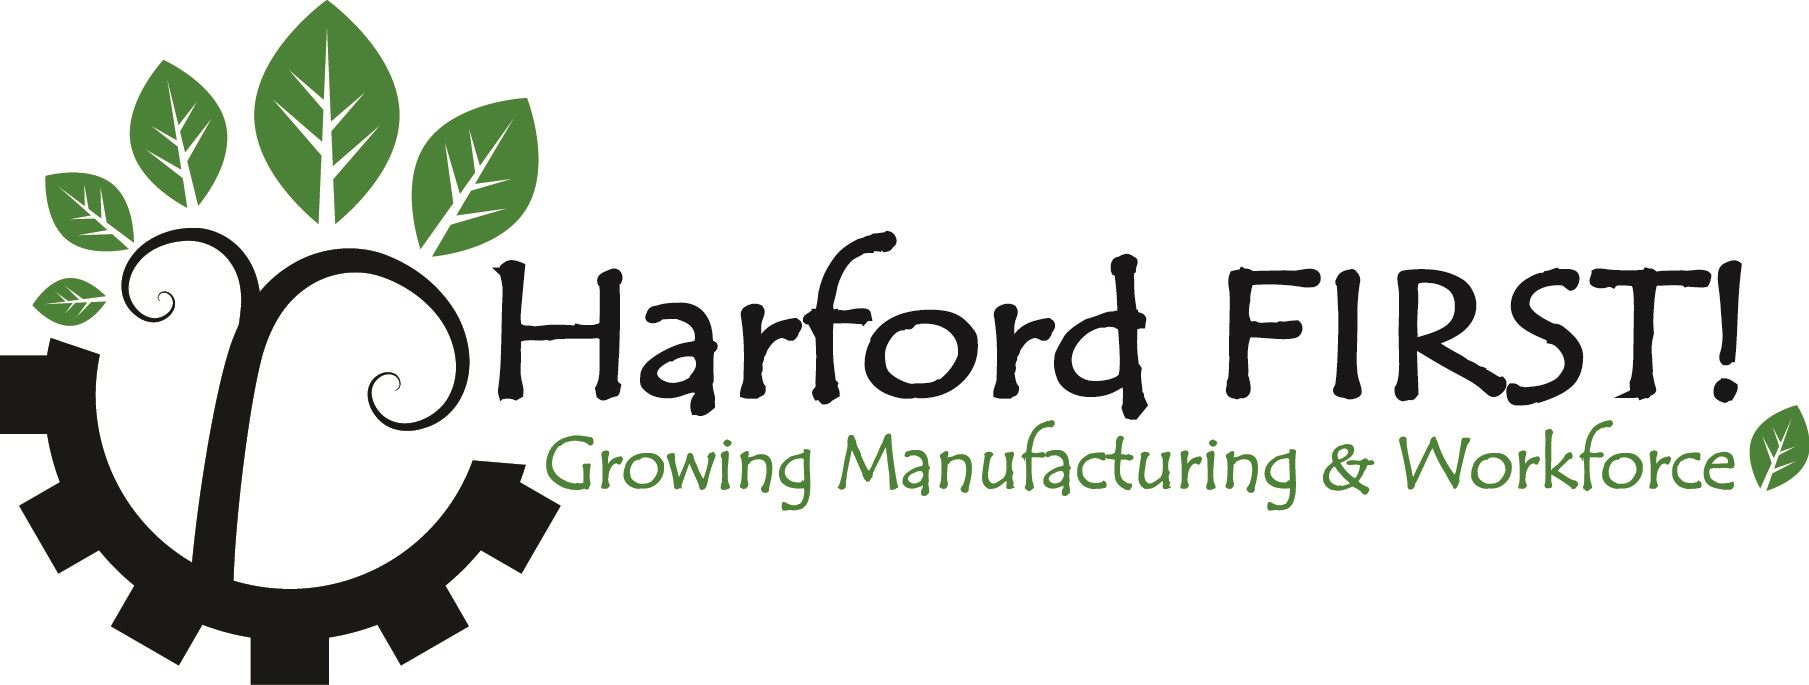 Harford First, Growing Manufacturing and Workforce